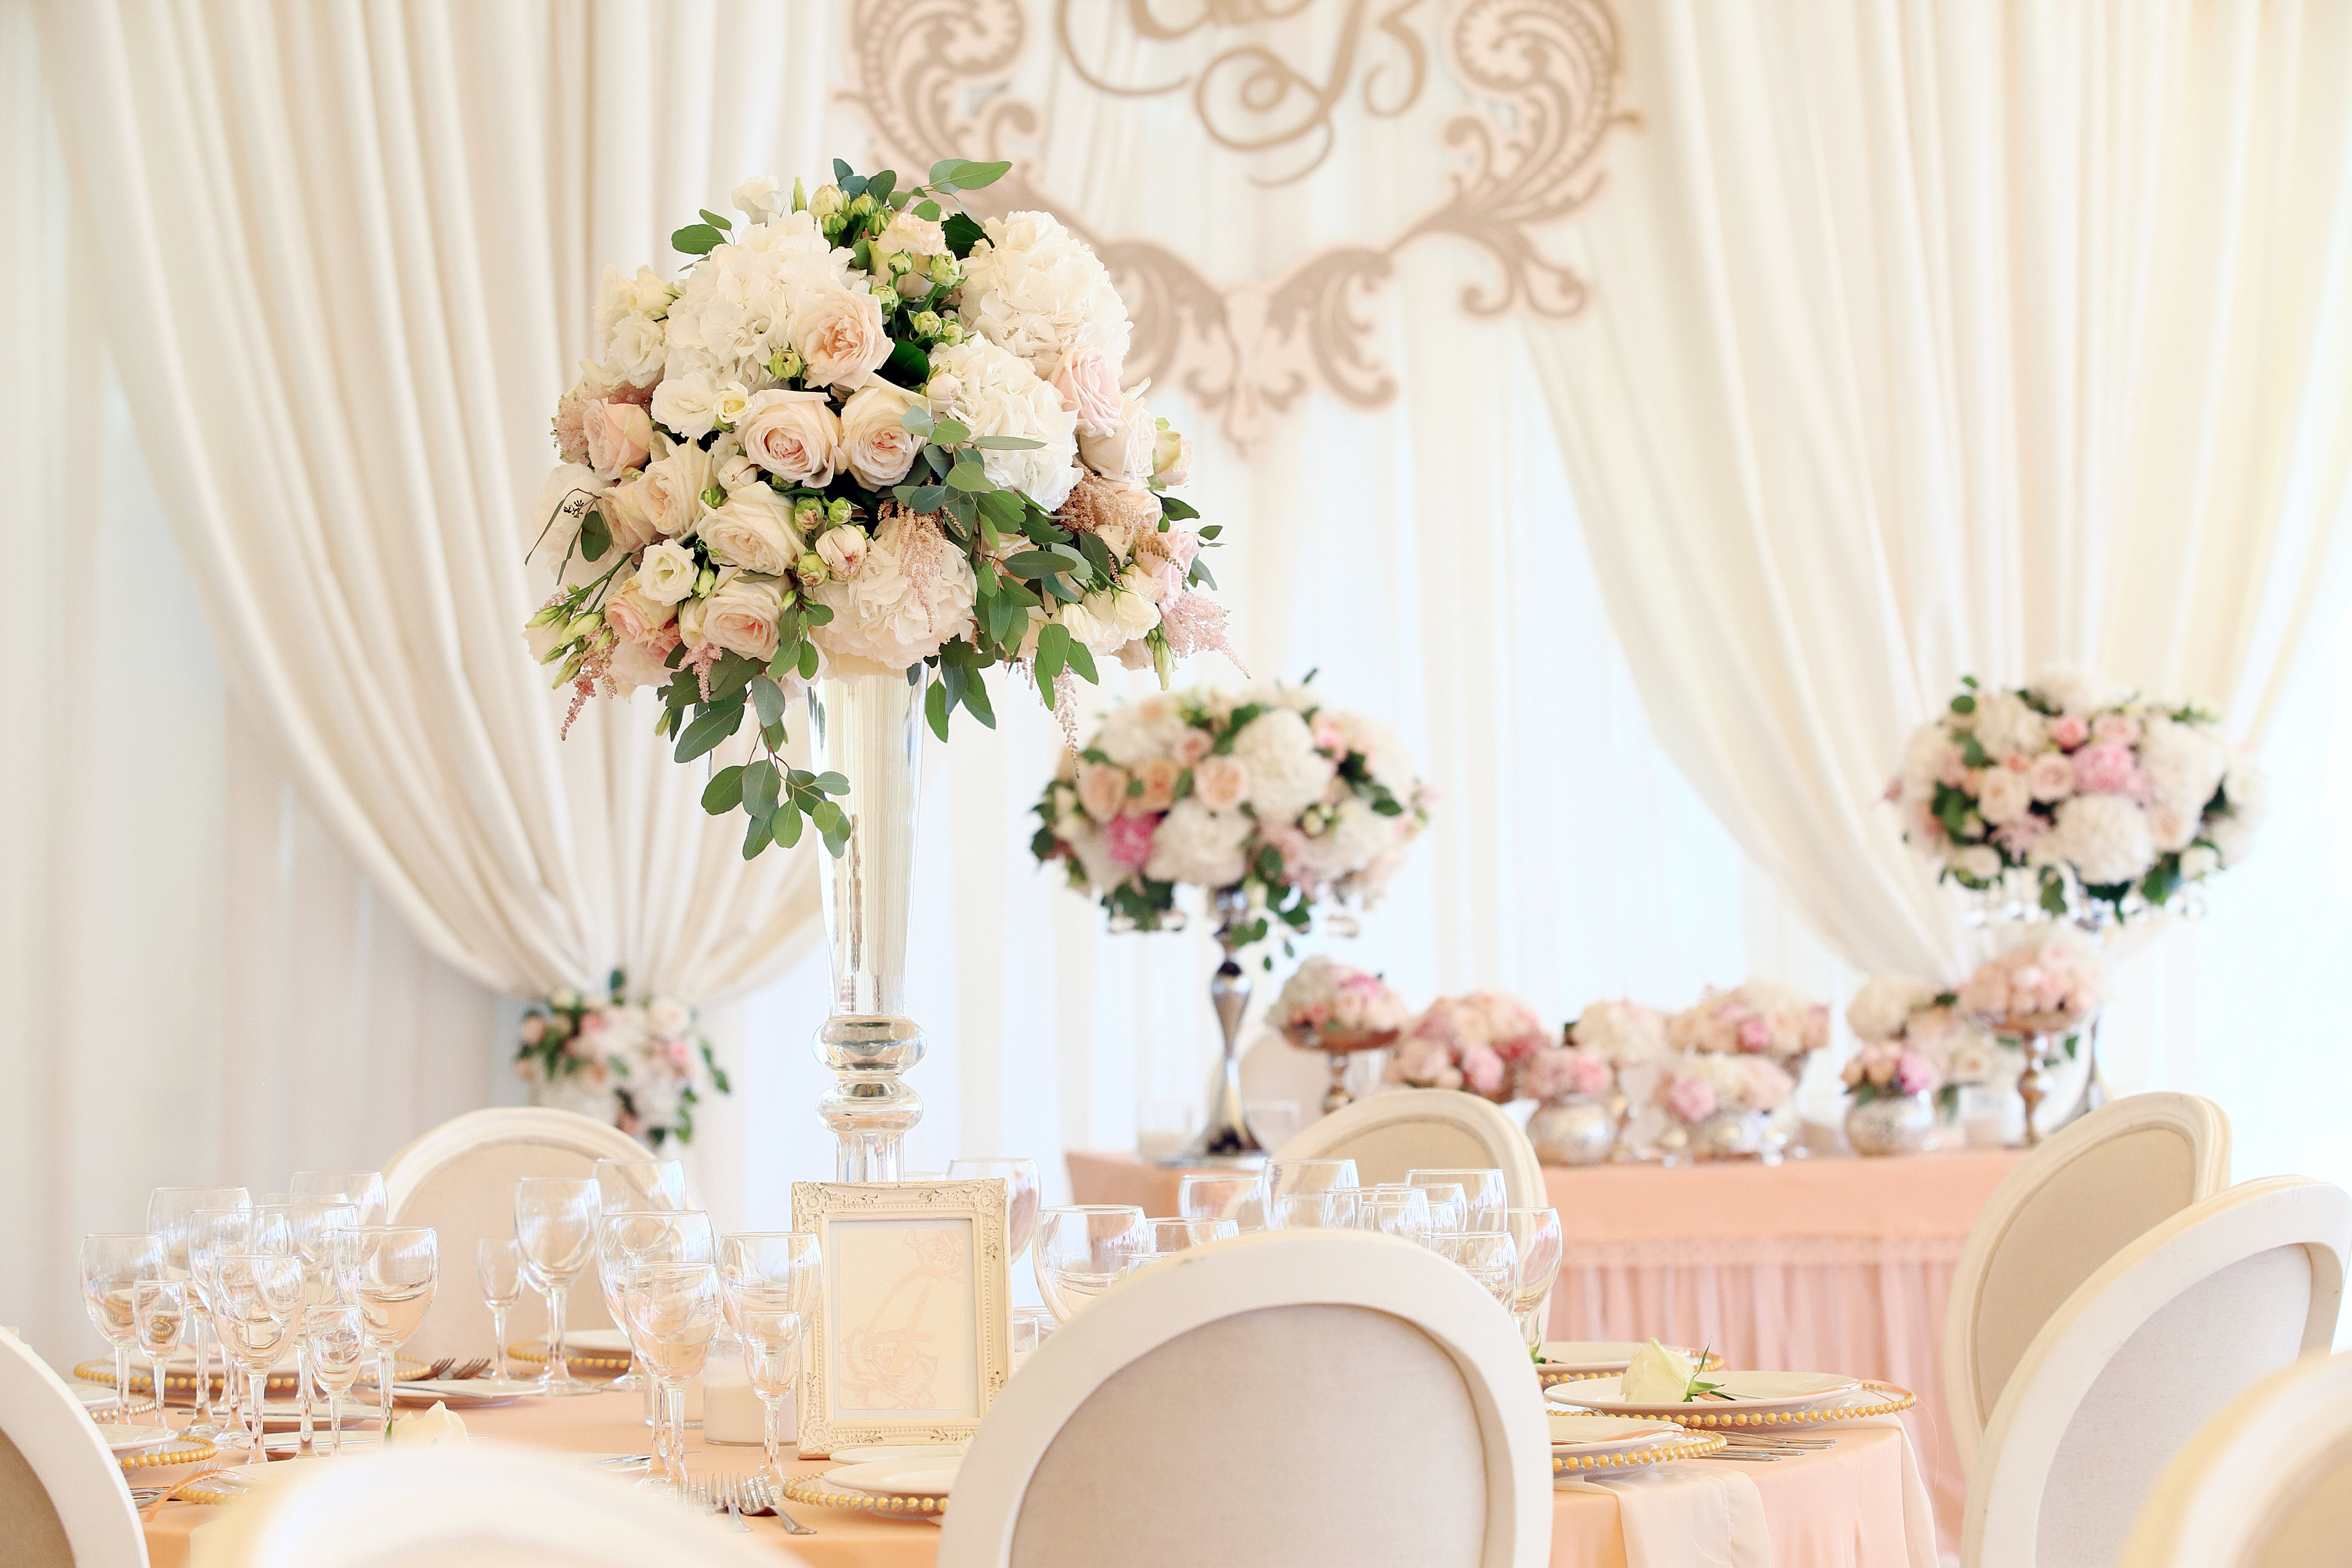 Event Decor Direct – New Event Decor Products, Reviews, Tips, Tricks & More…